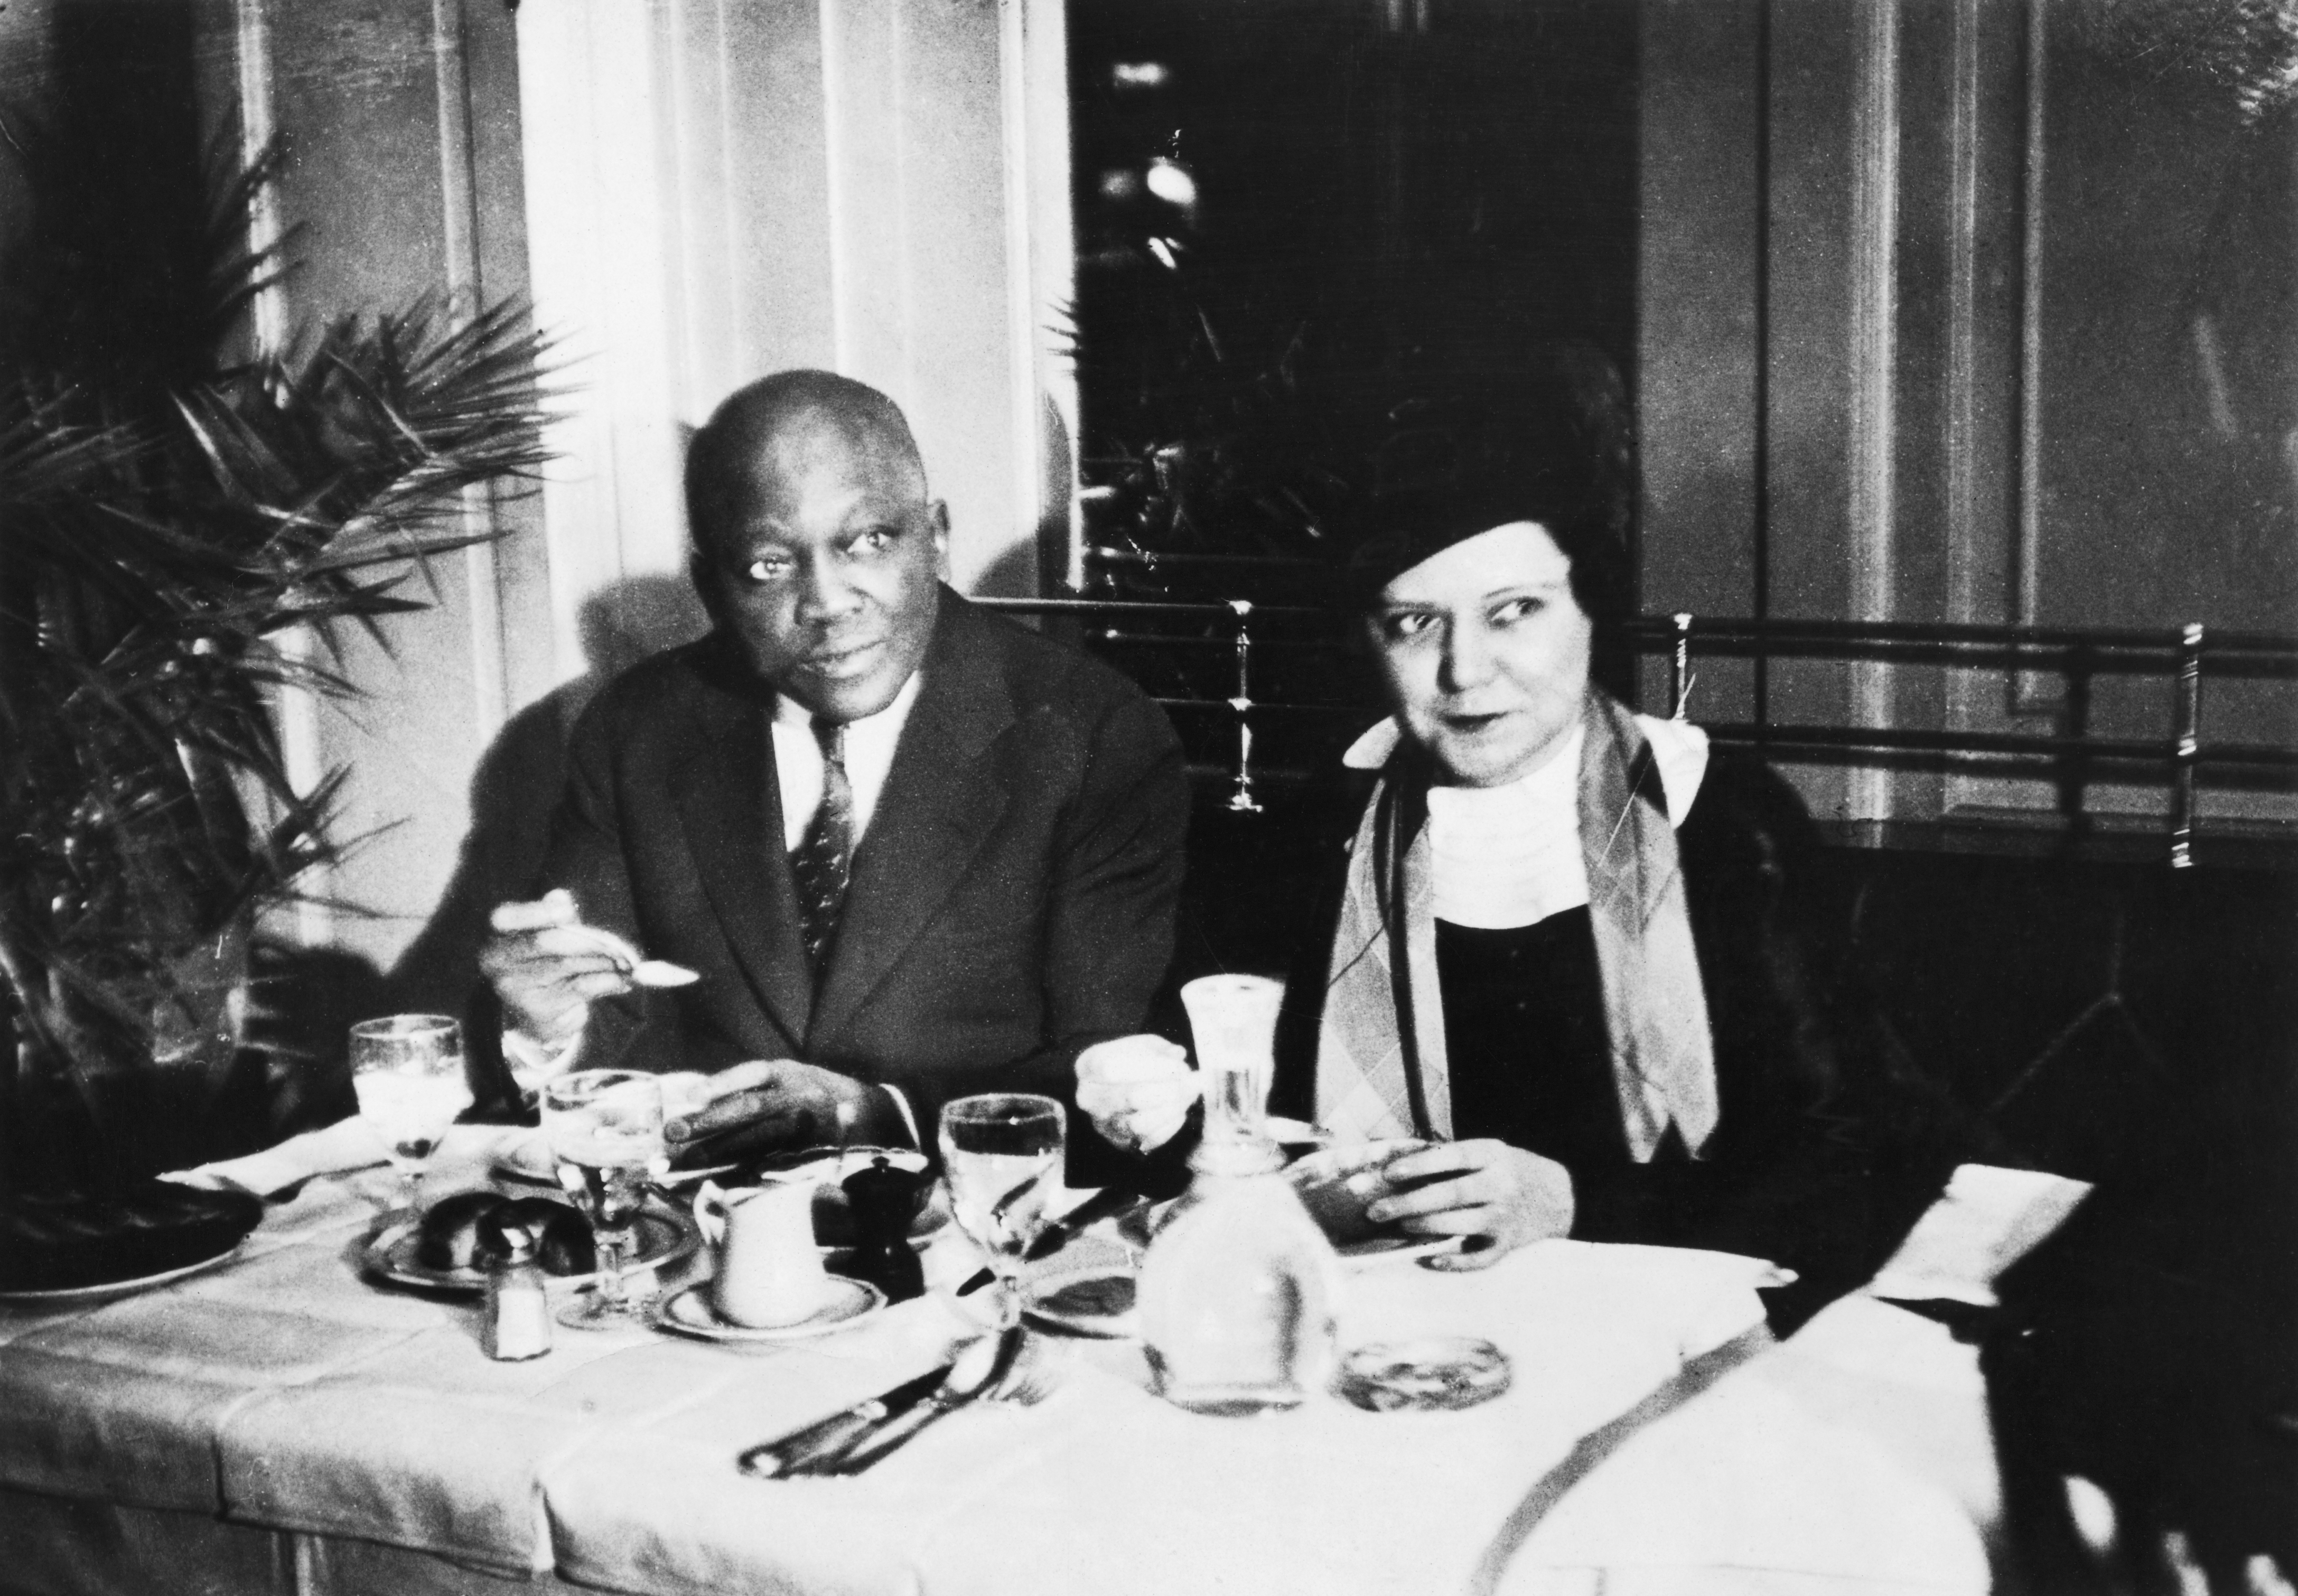 Jack Johnson and his wife Irene sit at a table which is set.